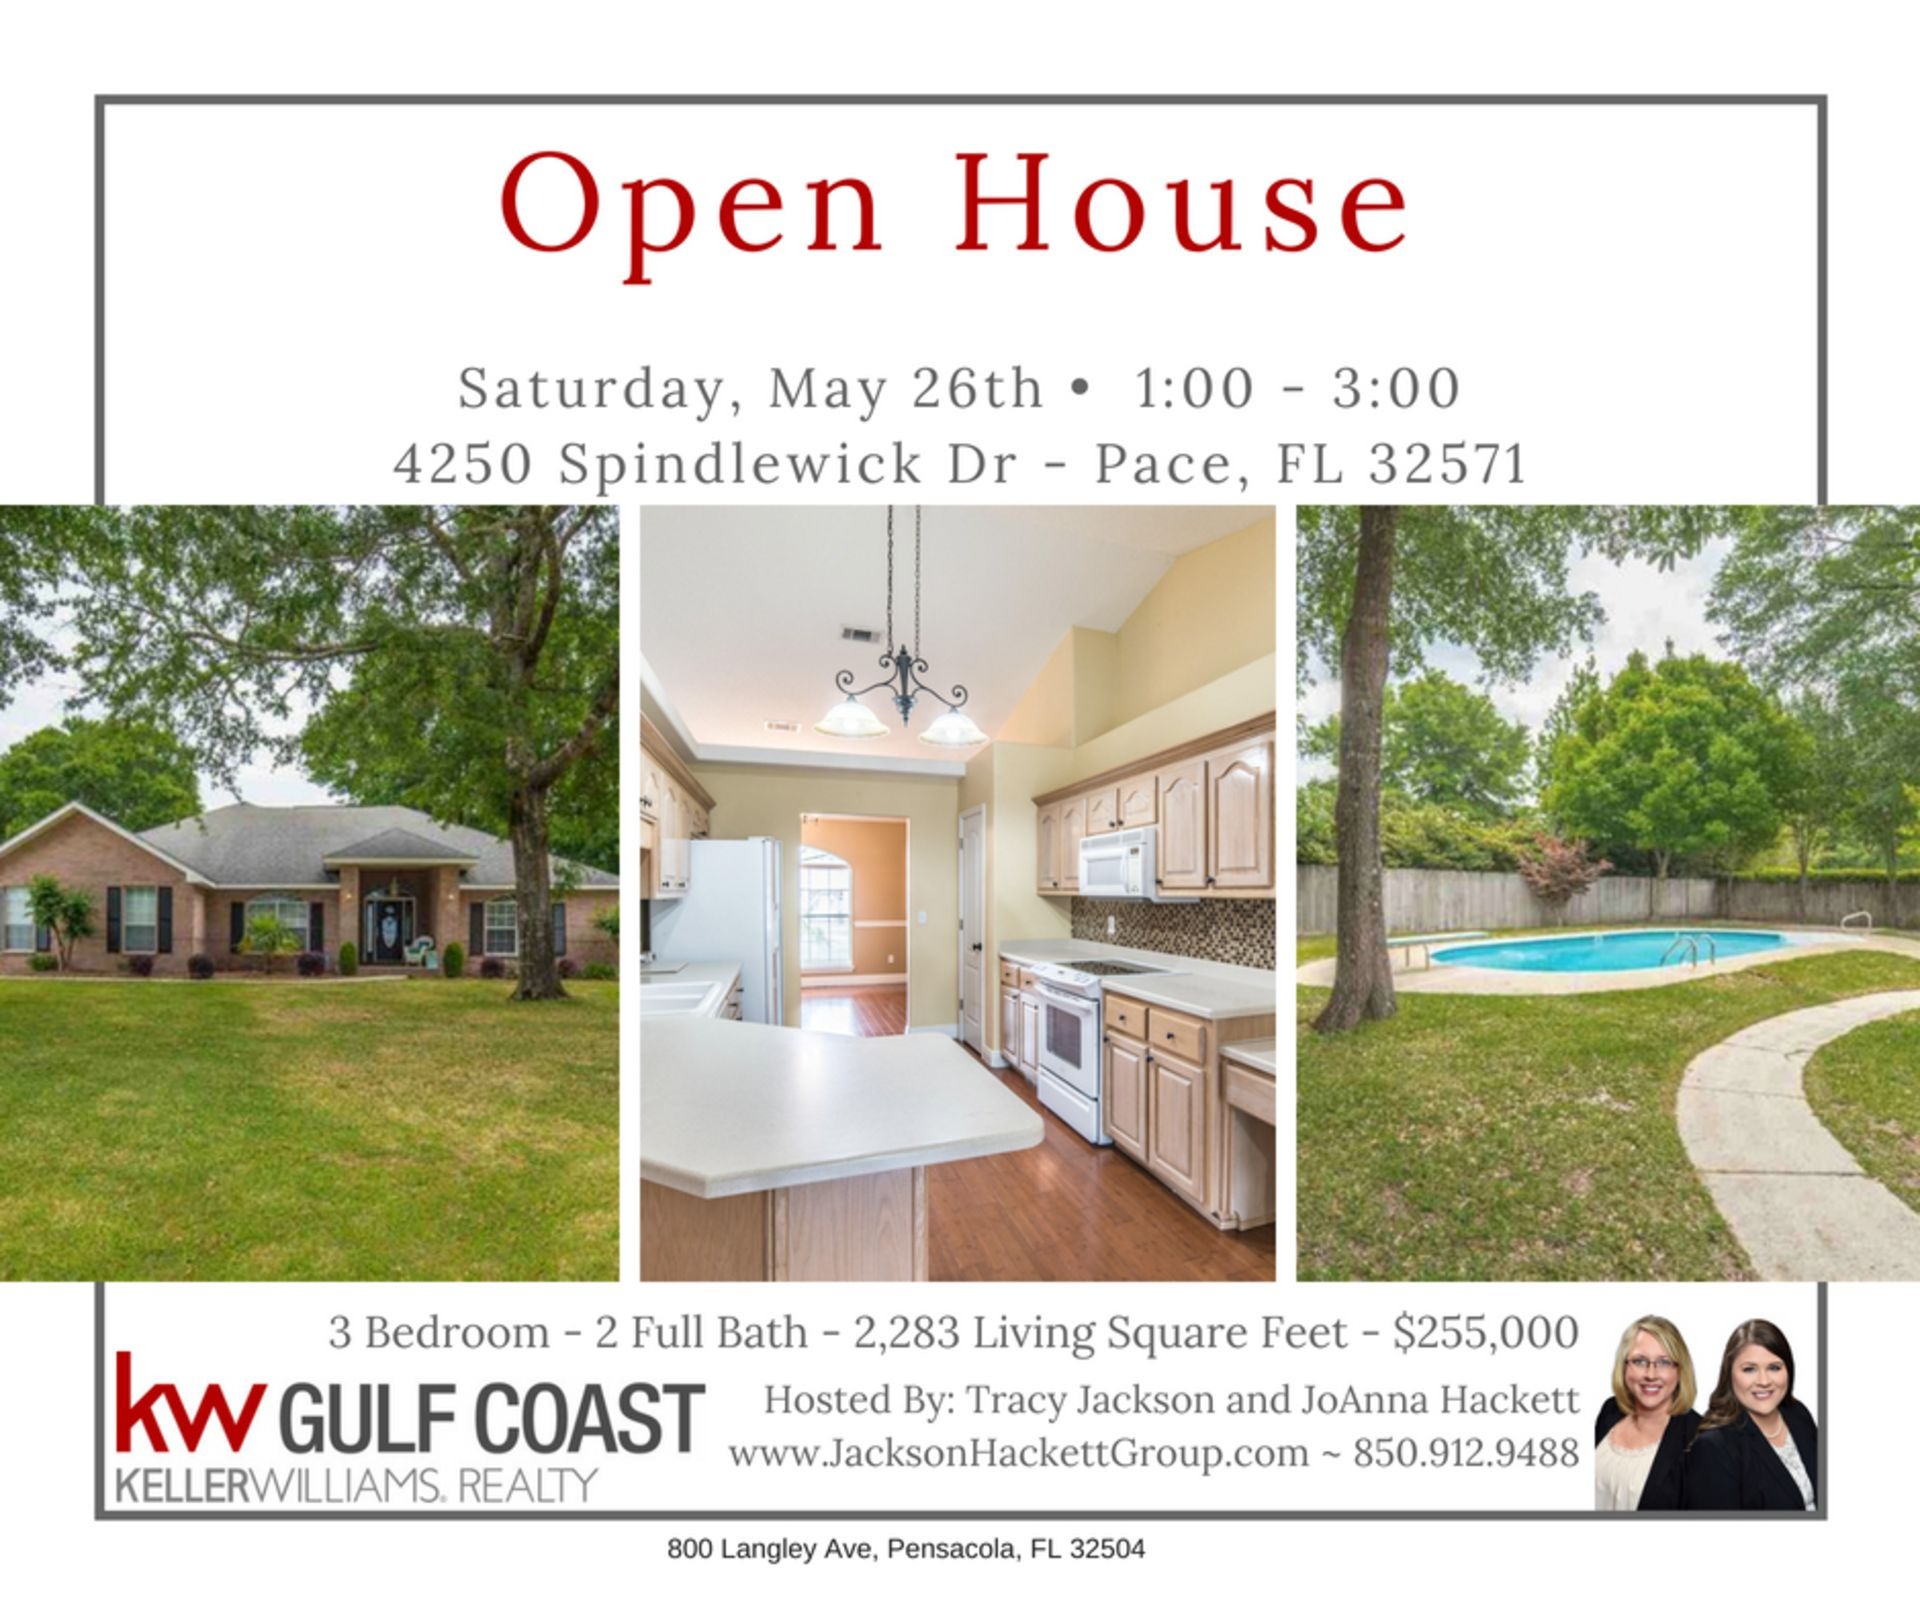 OPEN HOUSE 4250 Spindlewick Dr May 26, 2018